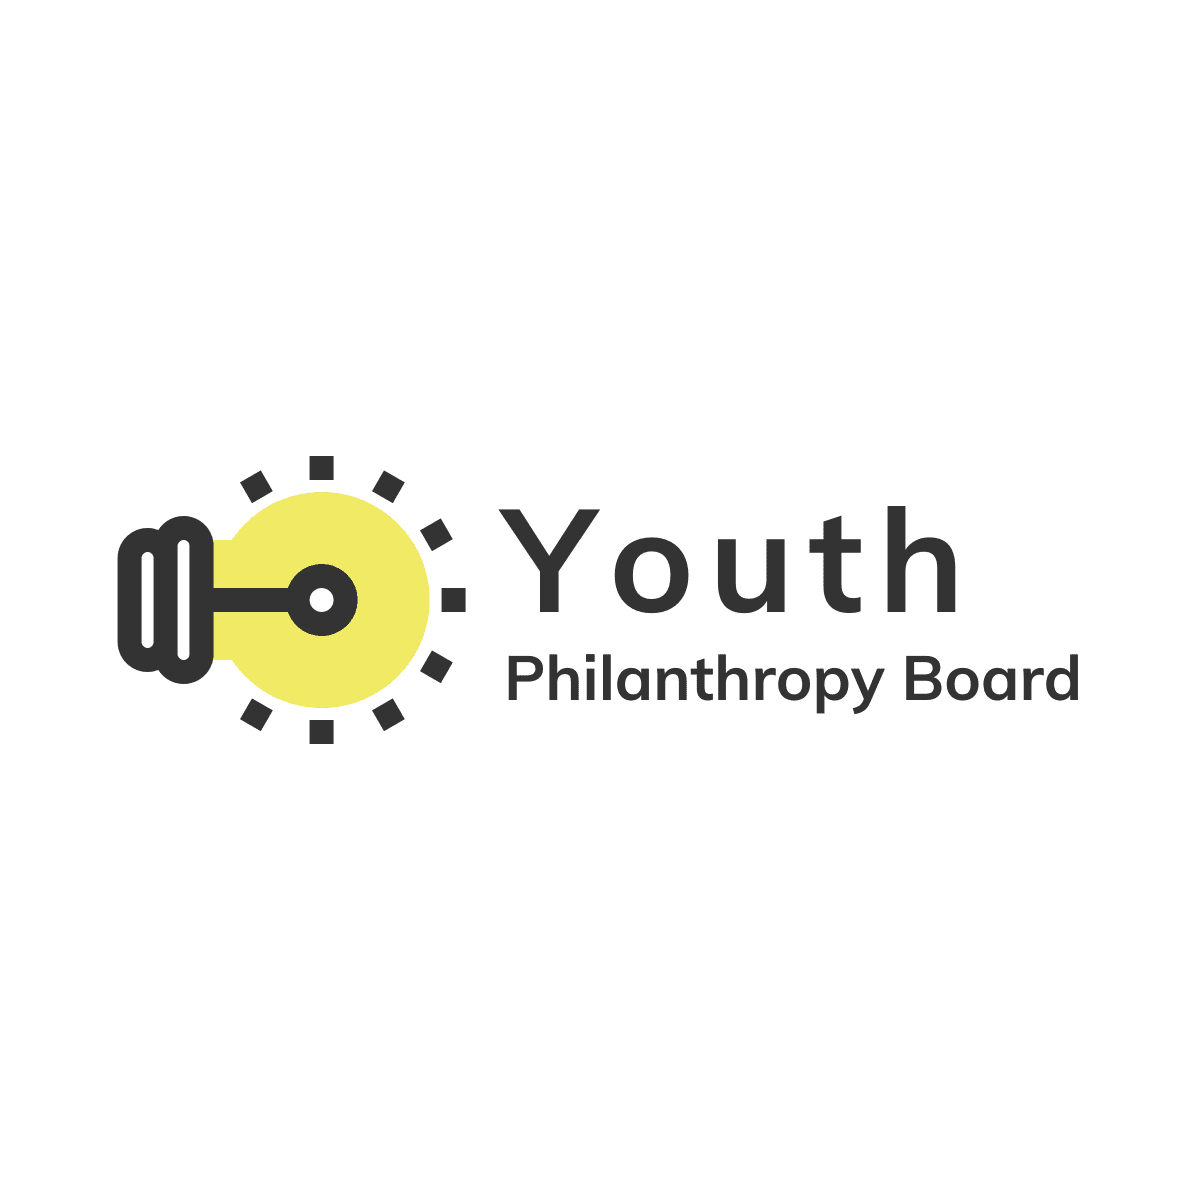 Youth Philanthropy Board - Grand Island Community Foundation